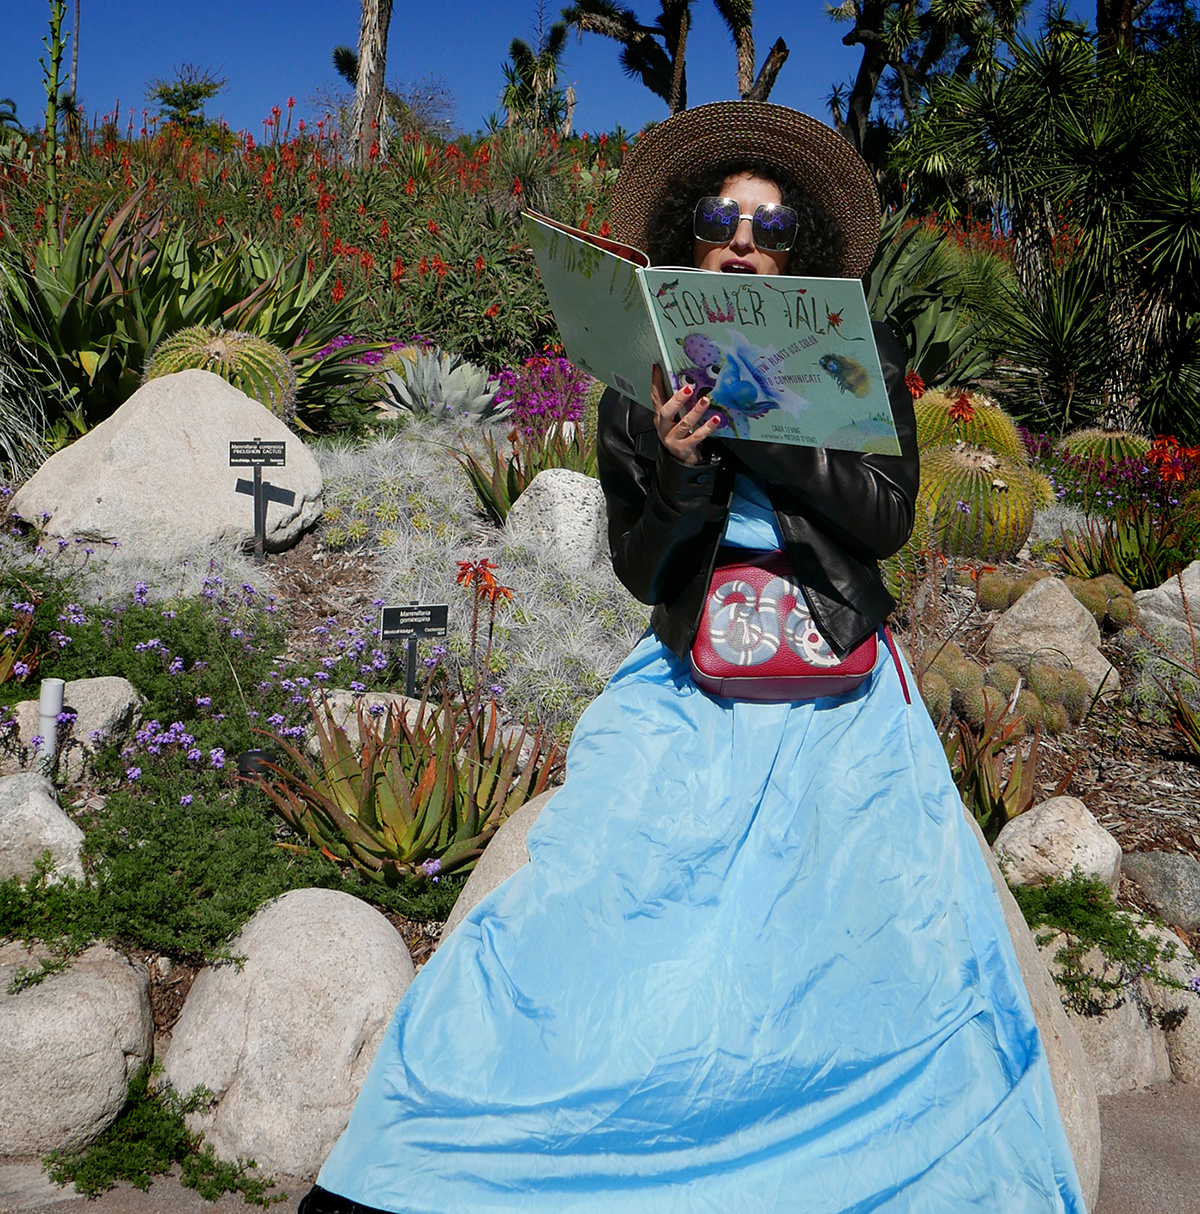 Flower Talk book by Masha D'yans reading in succulents